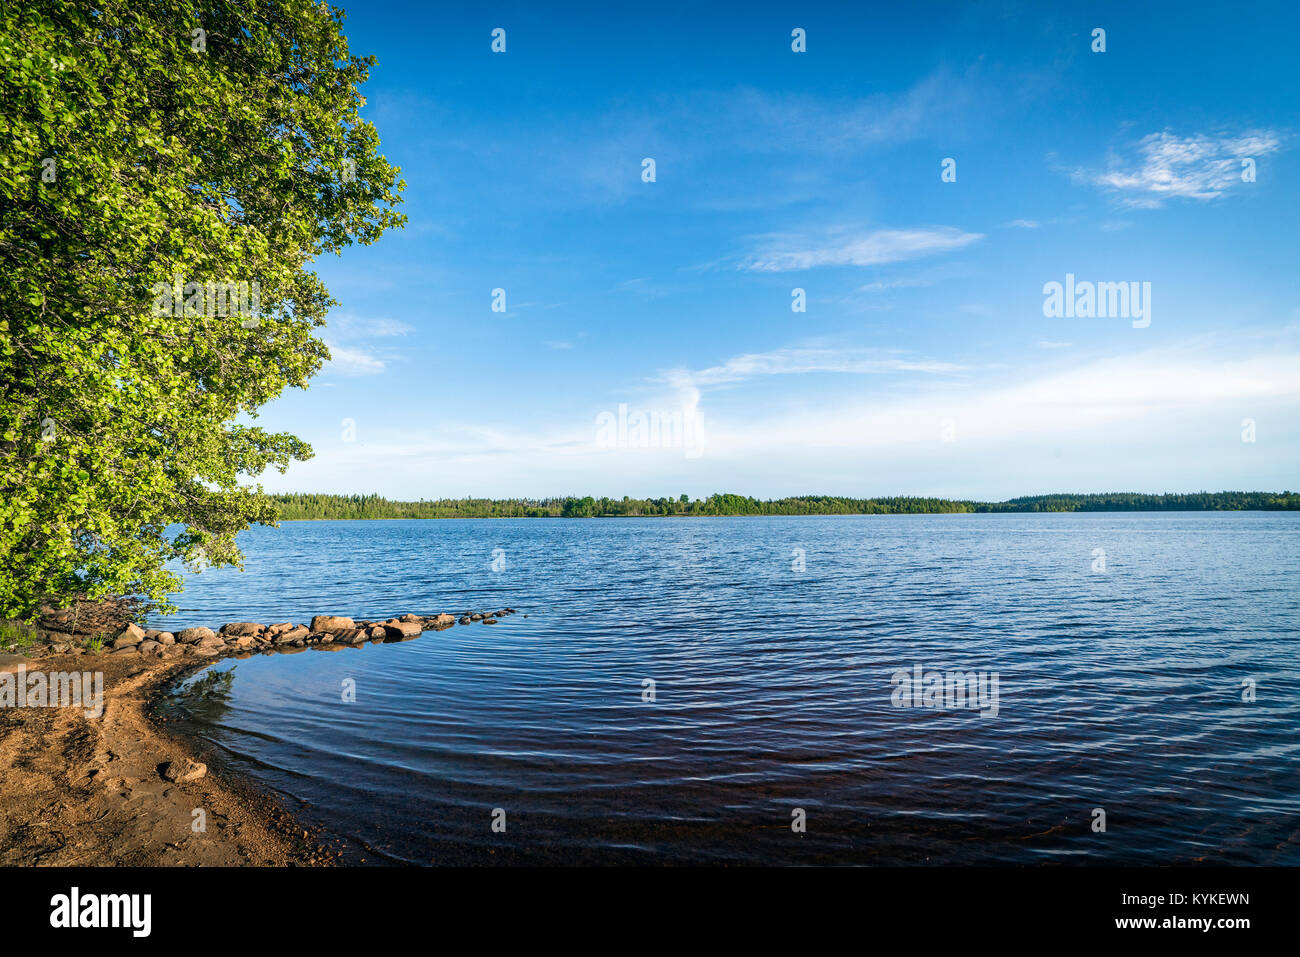 Beach by a large forest lake in the summer with dark blue water and sky - Stock Image